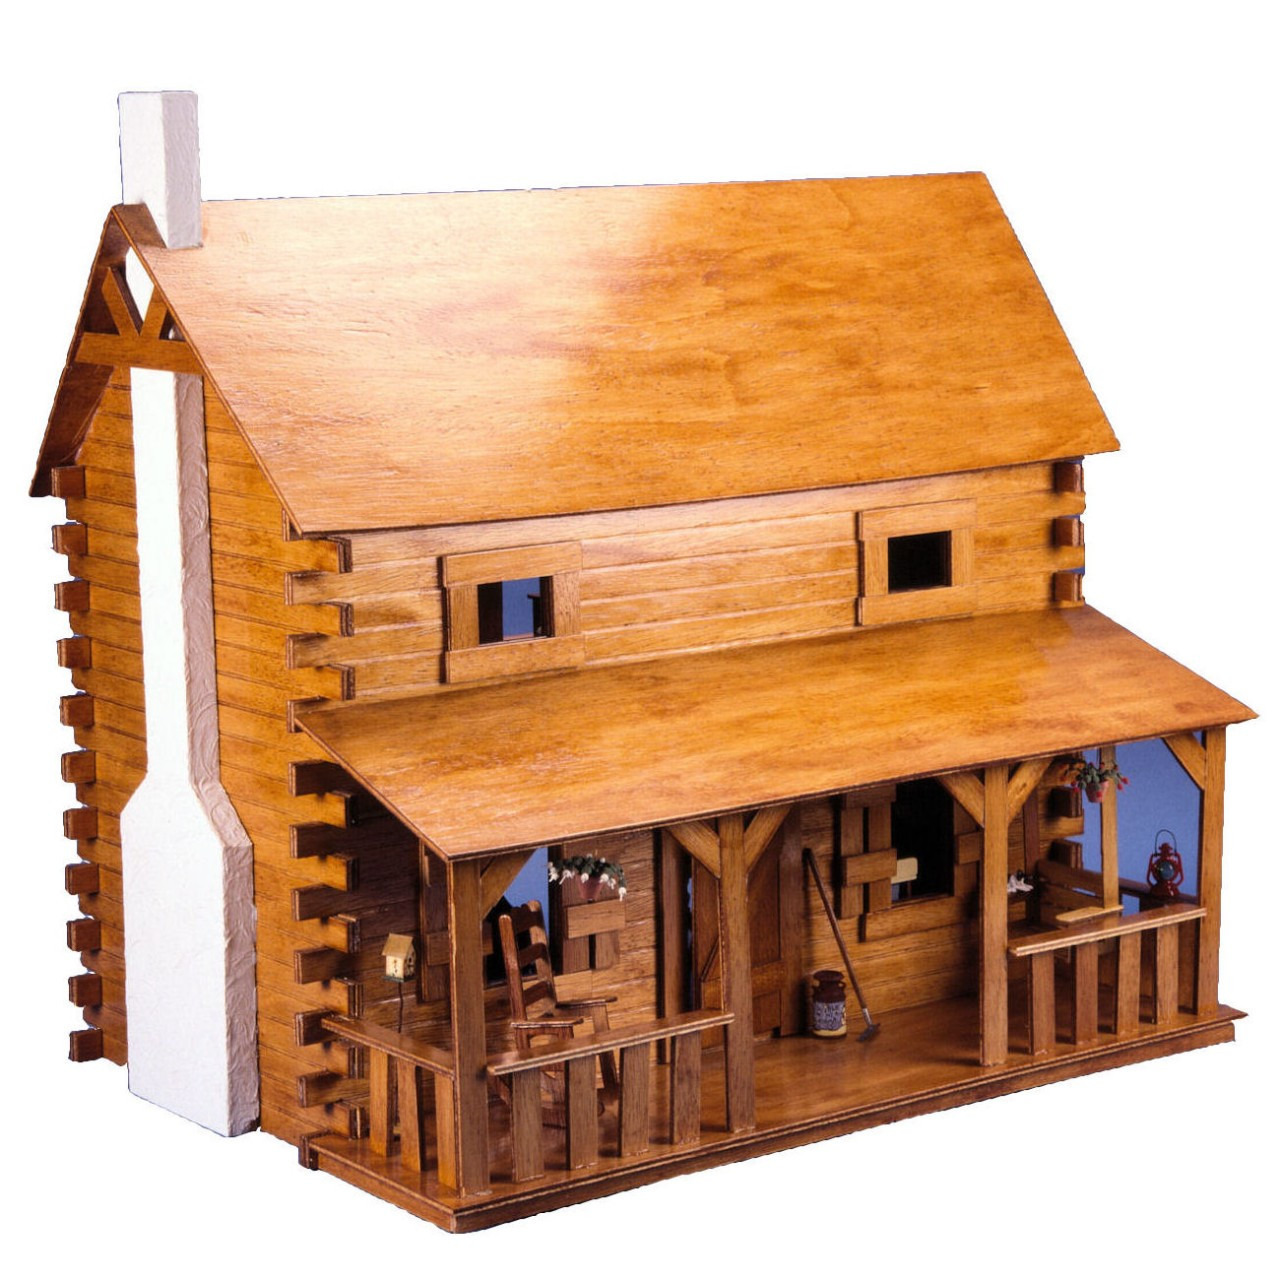 Creekside Cabin Dollhouse Kit on wooden toy car plans, wooden toy train plans, black box plans, tool tote plans, serenity plans, er plans, bookcase plans, sanctuary plans, woodworking plans, wooden pull toys plans, life plans, firefly plans, floor plans,